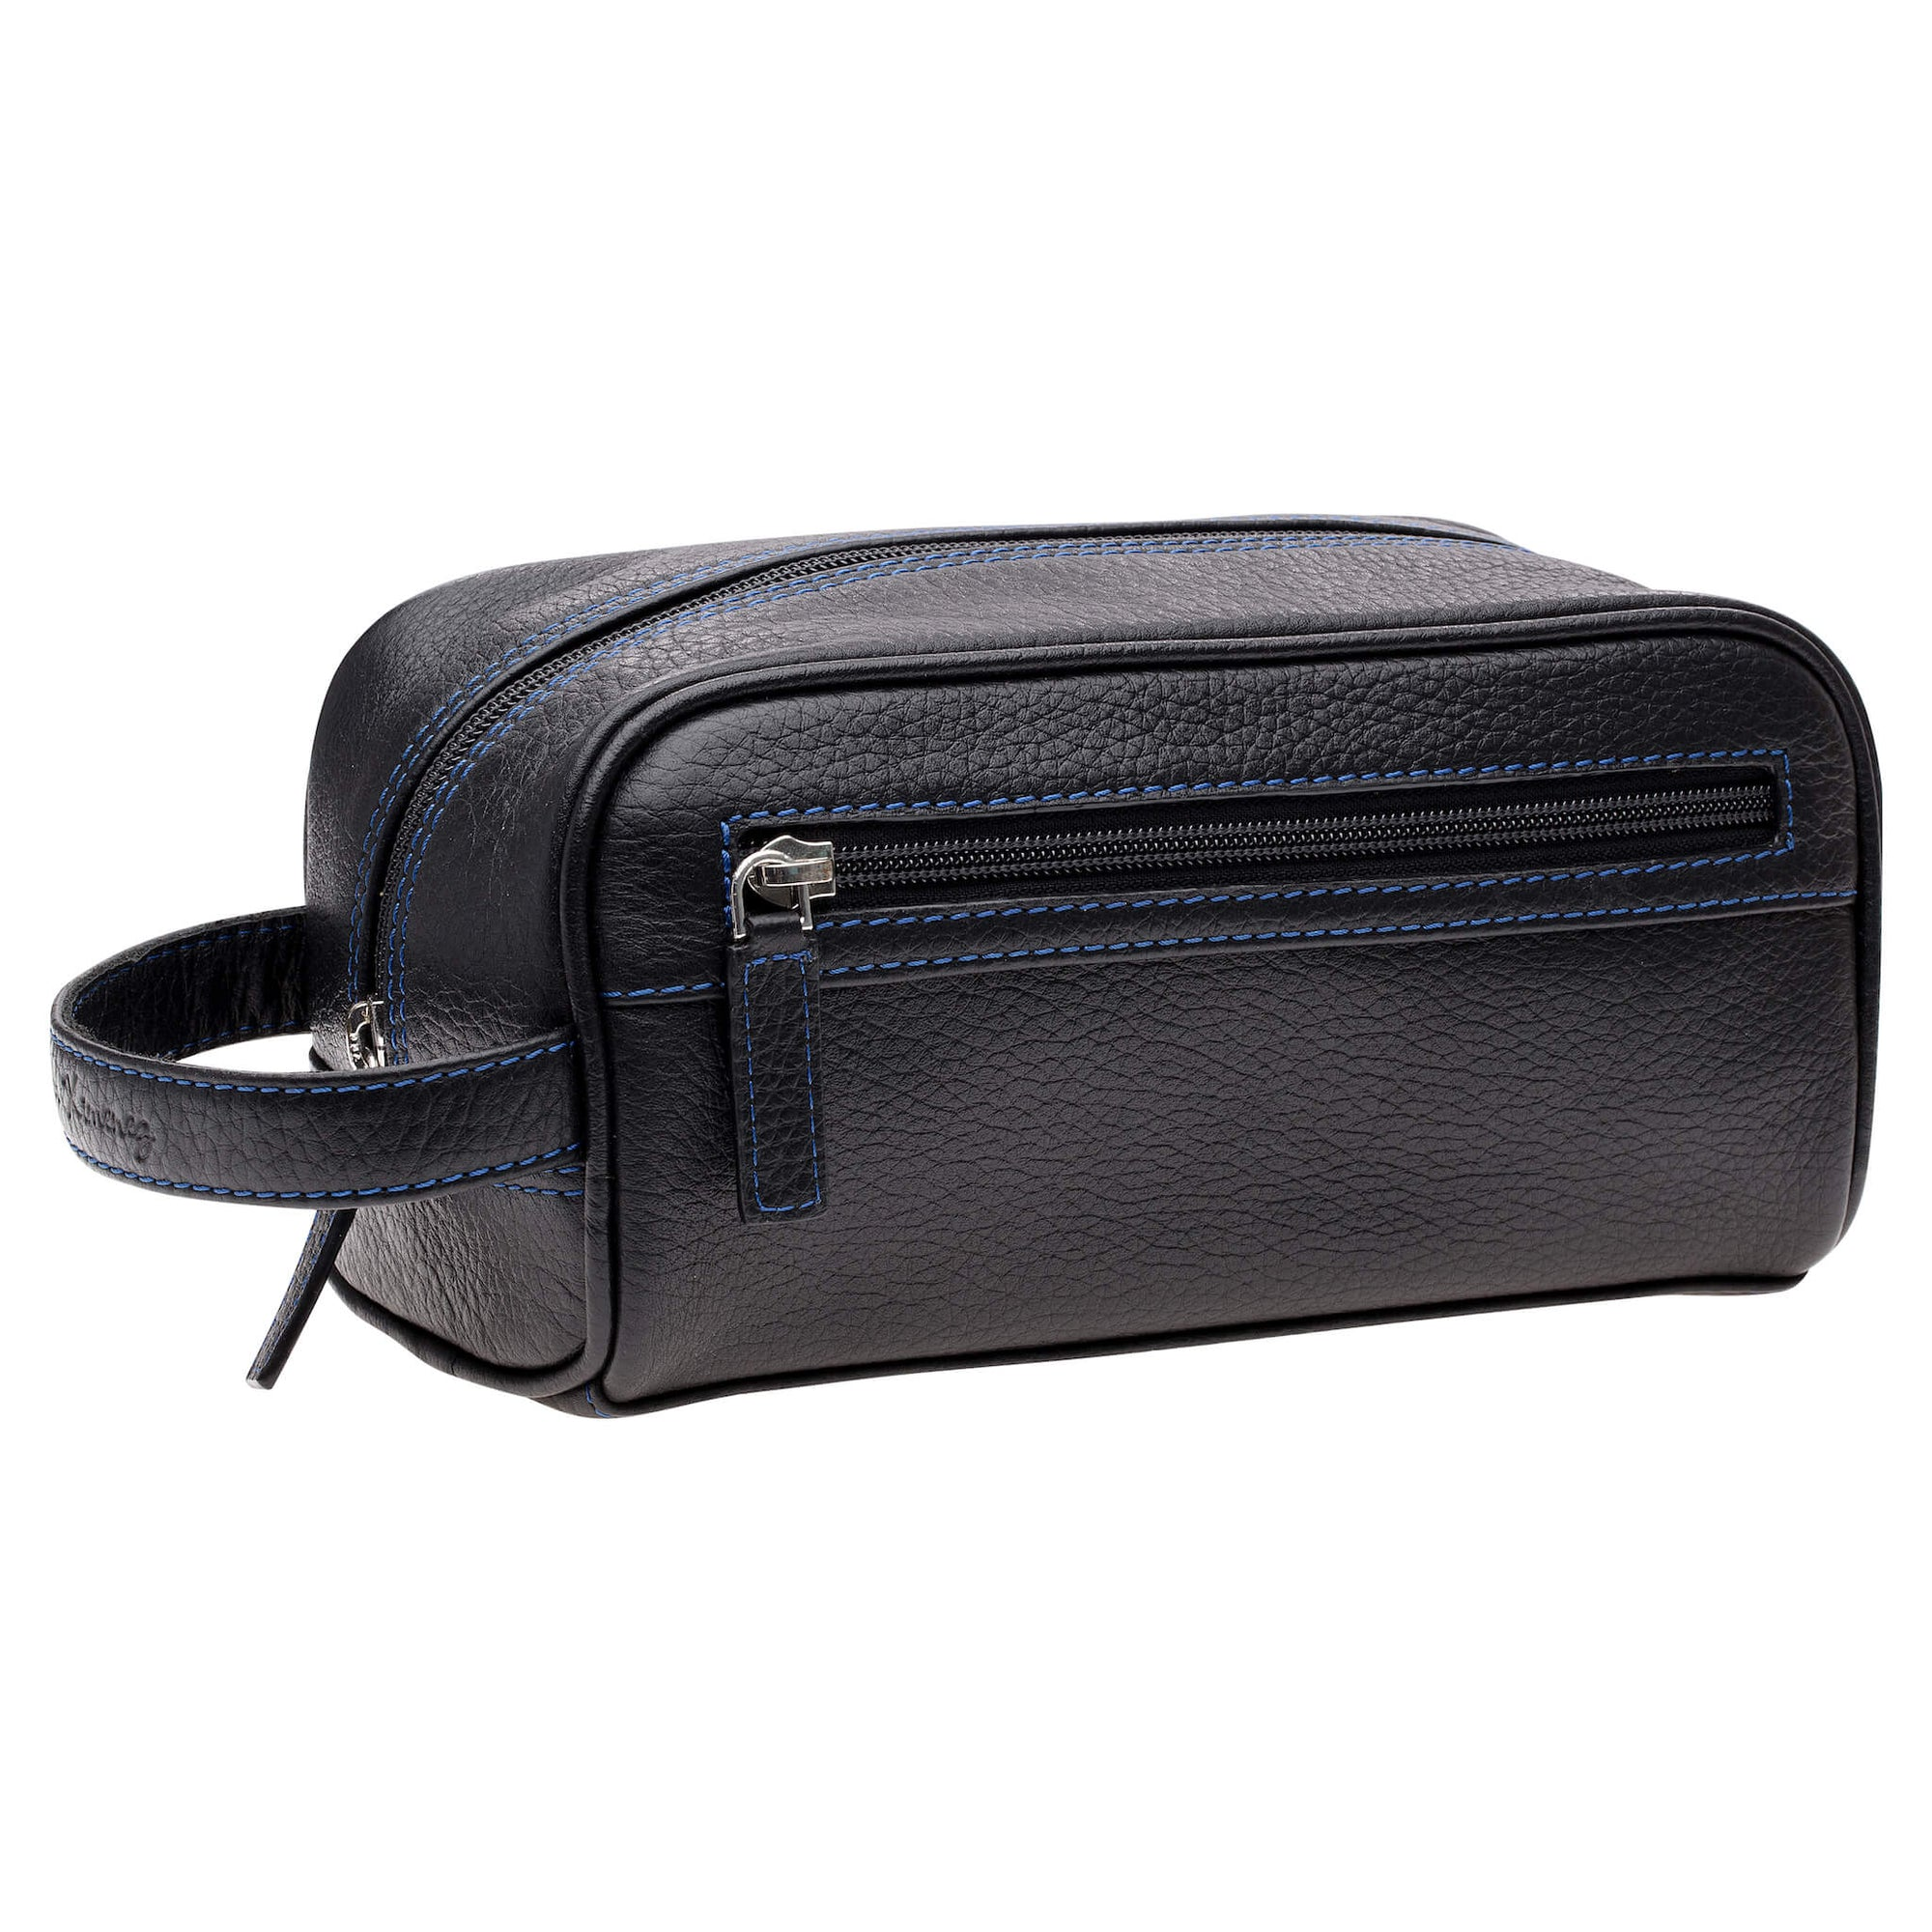 Black Leather Toiletry Bag - Cobalt | Mens Fashion & Leather Goods by Roger Ximenez